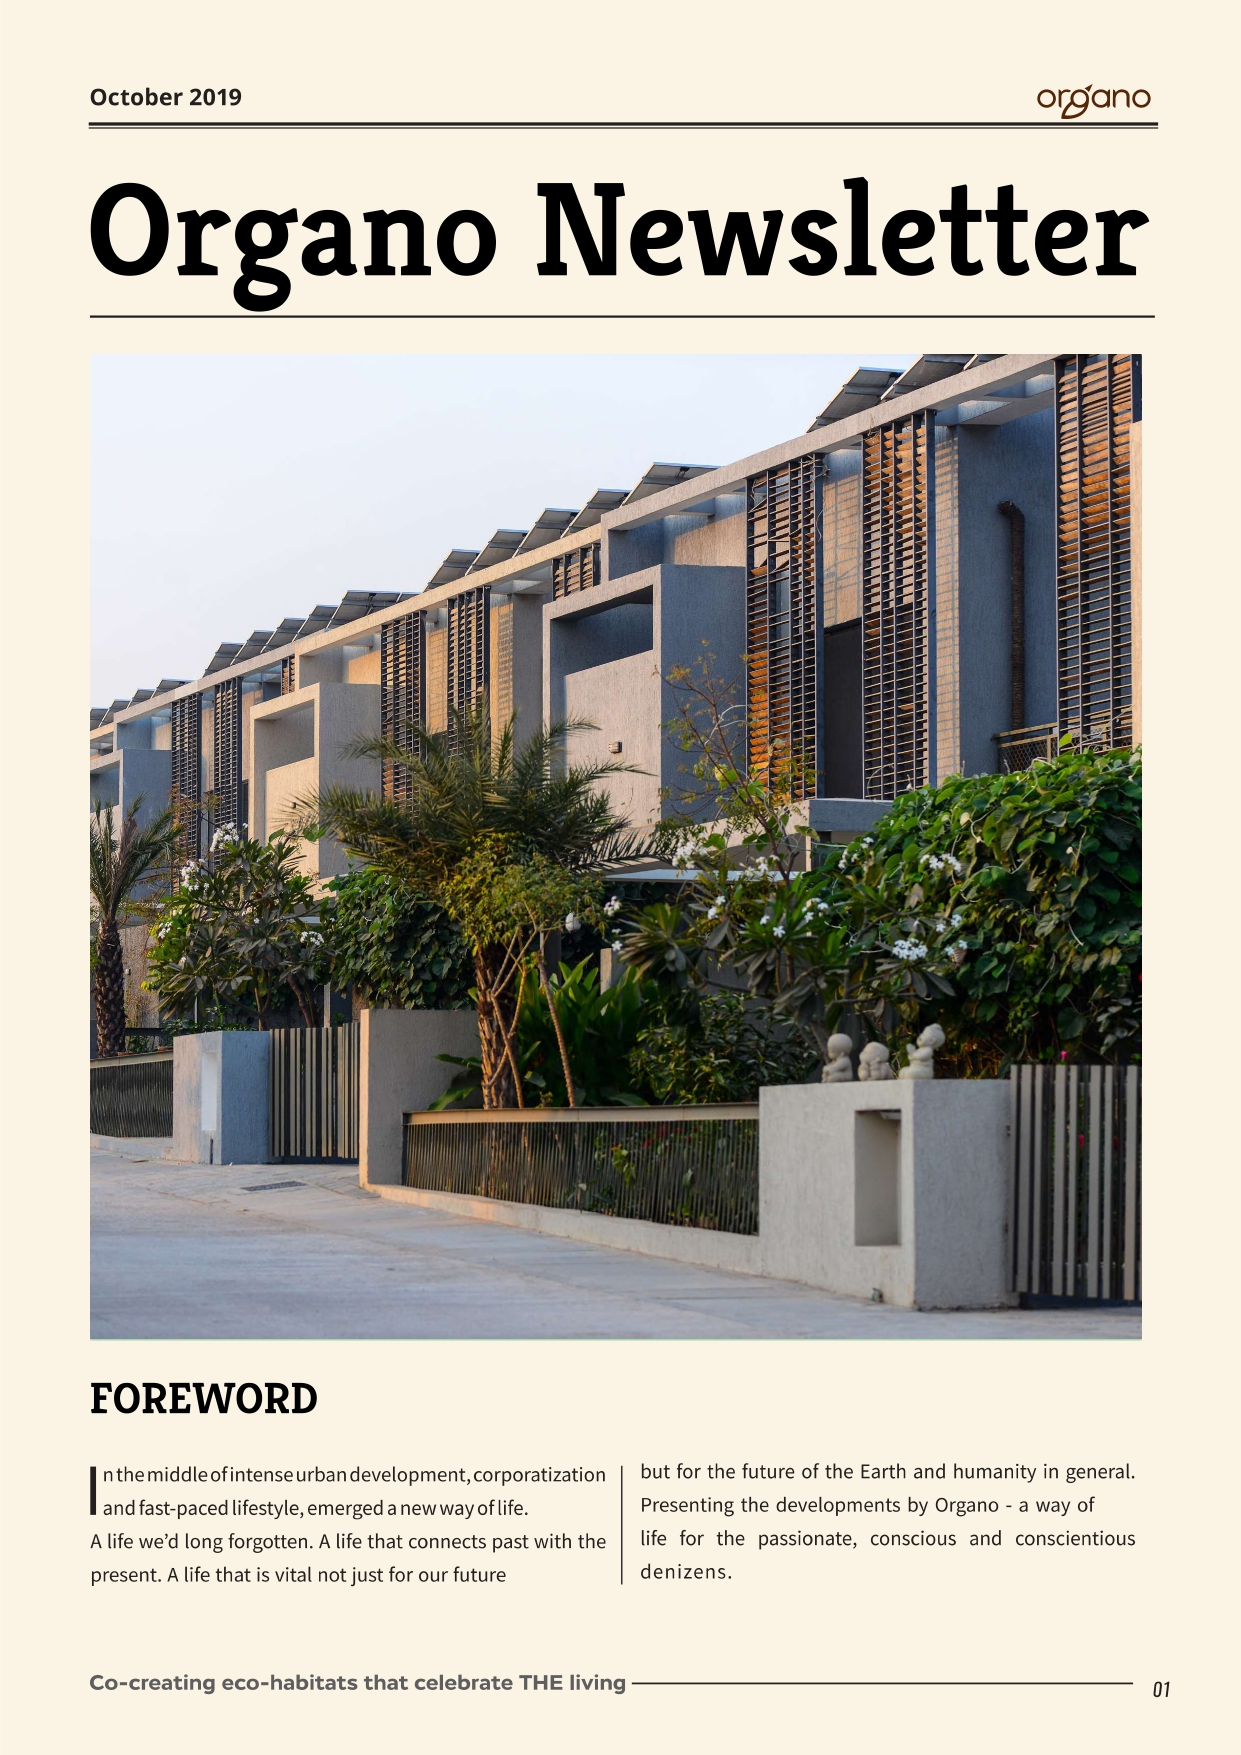 Organo newsletters